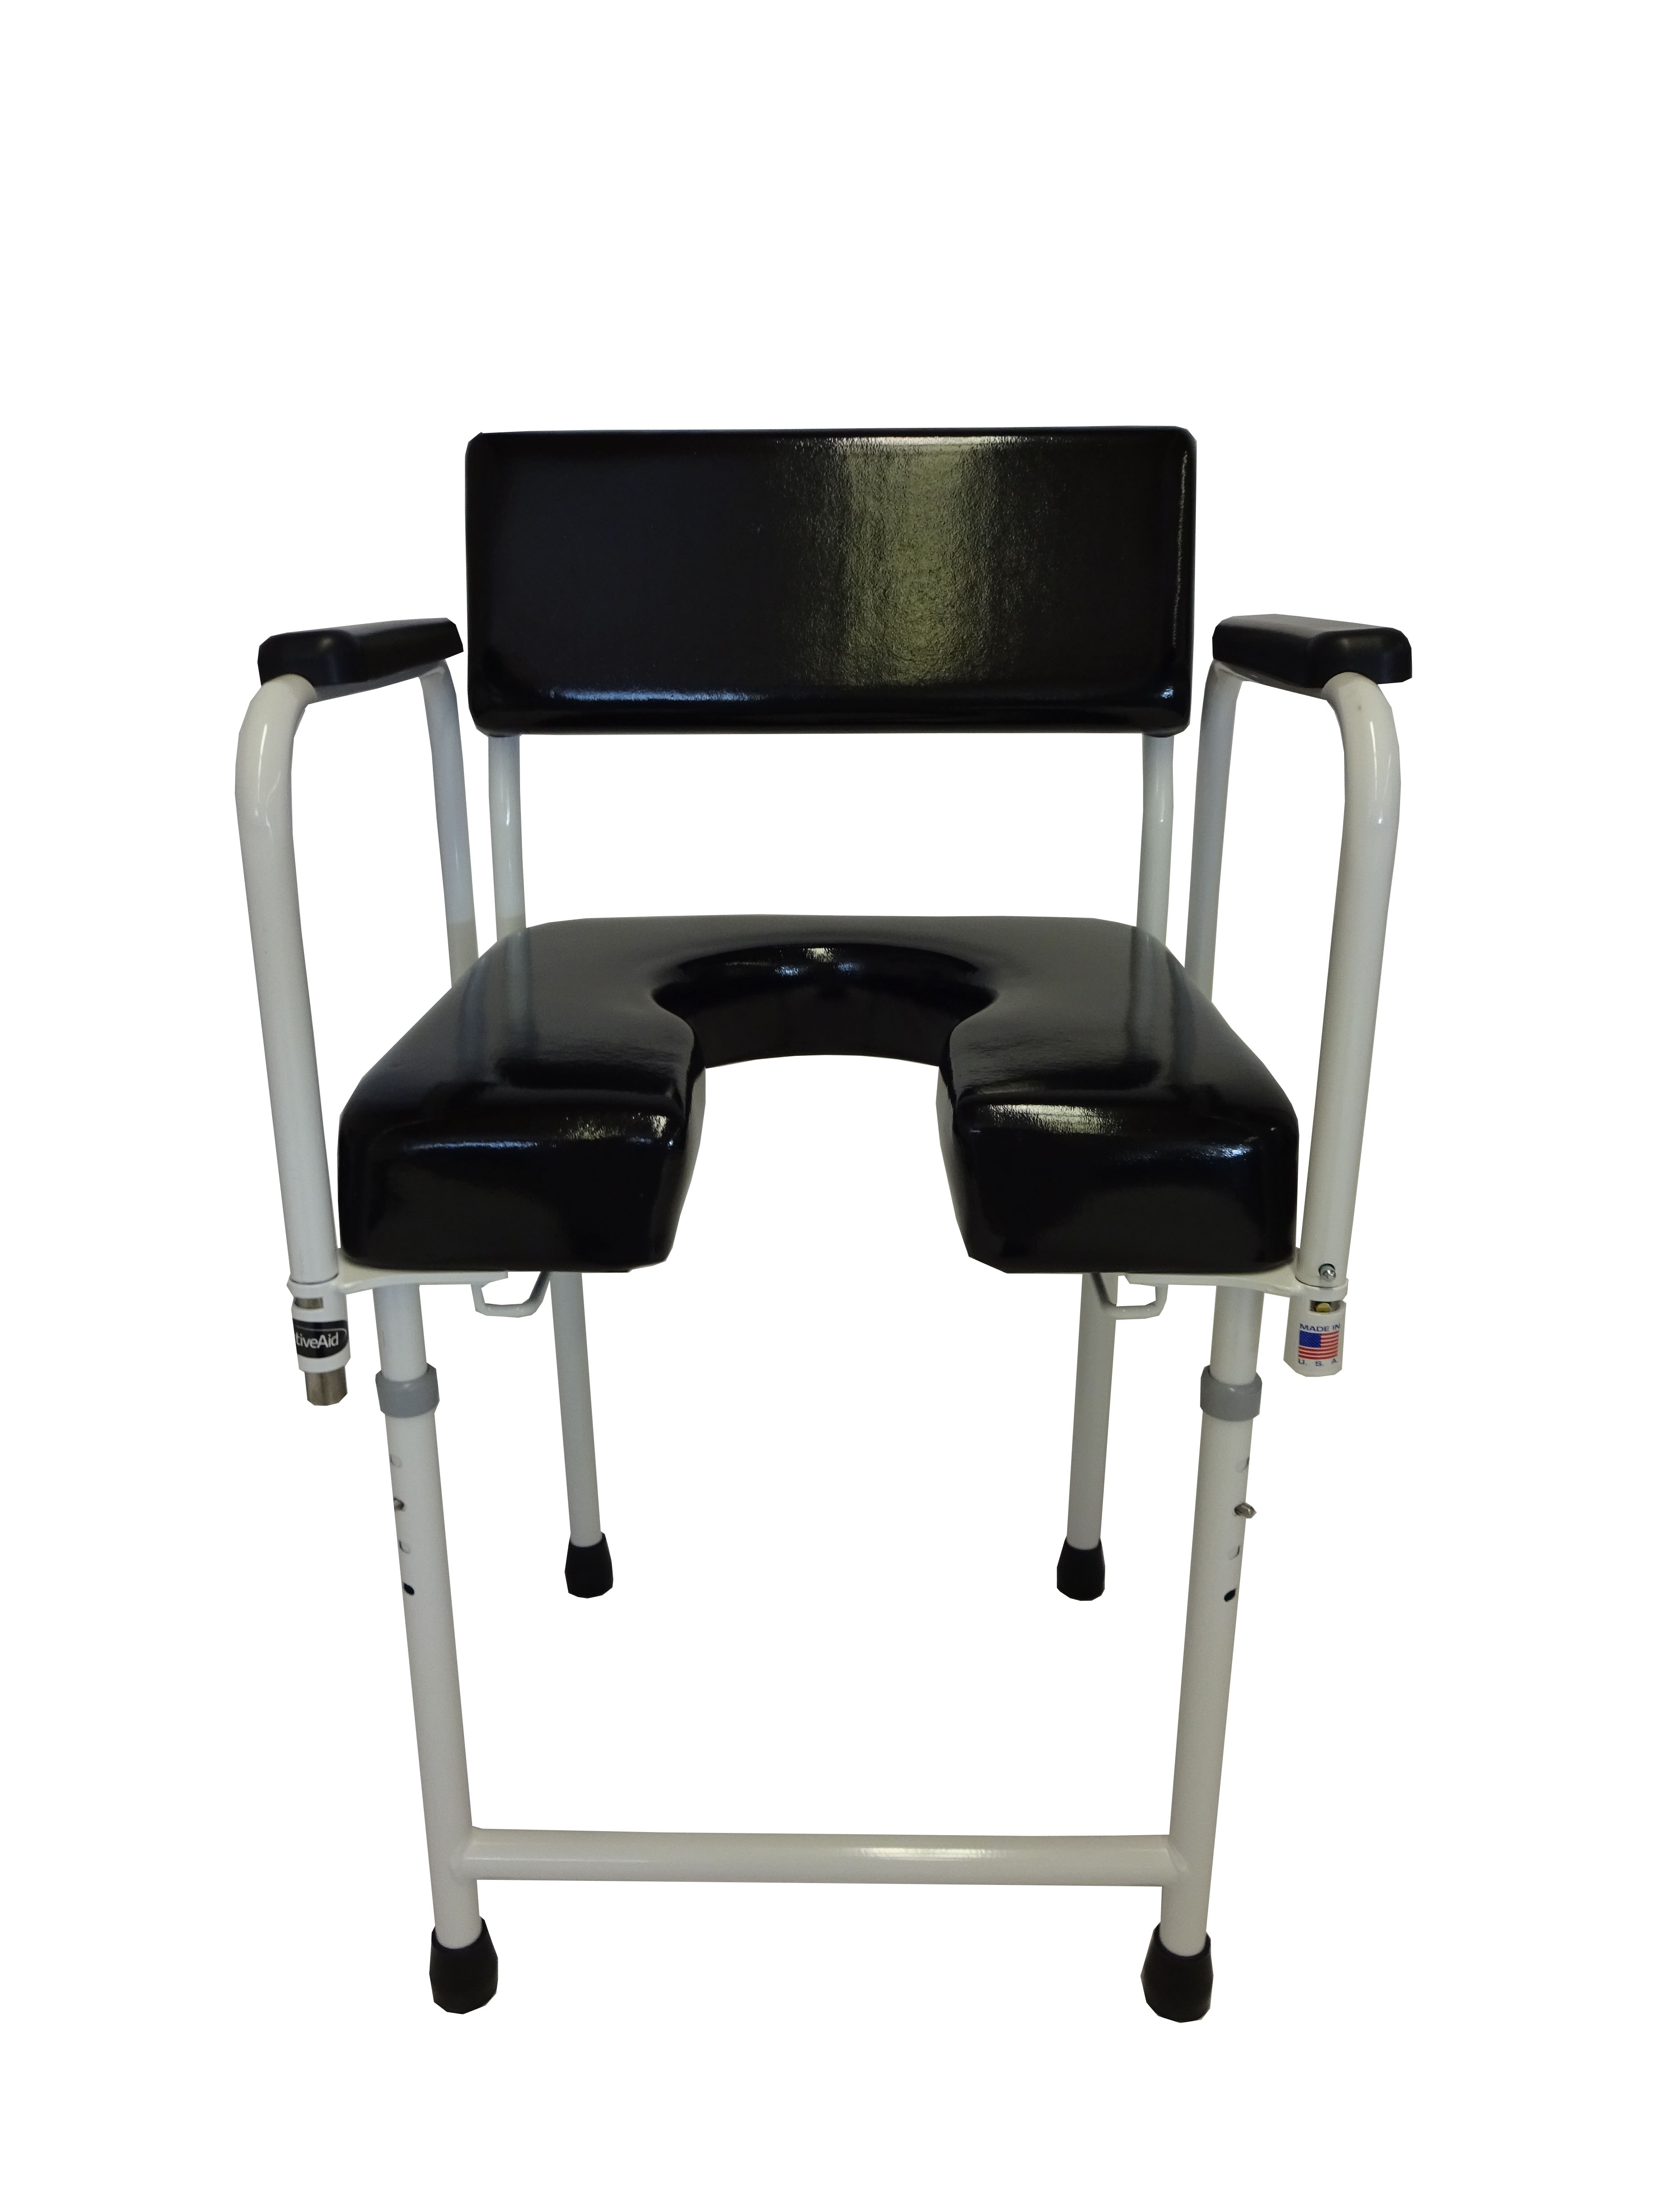 Astounding Activeaid 202 Bathroom Assist Chair Short Links Chair Design For Home Short Linksinfo